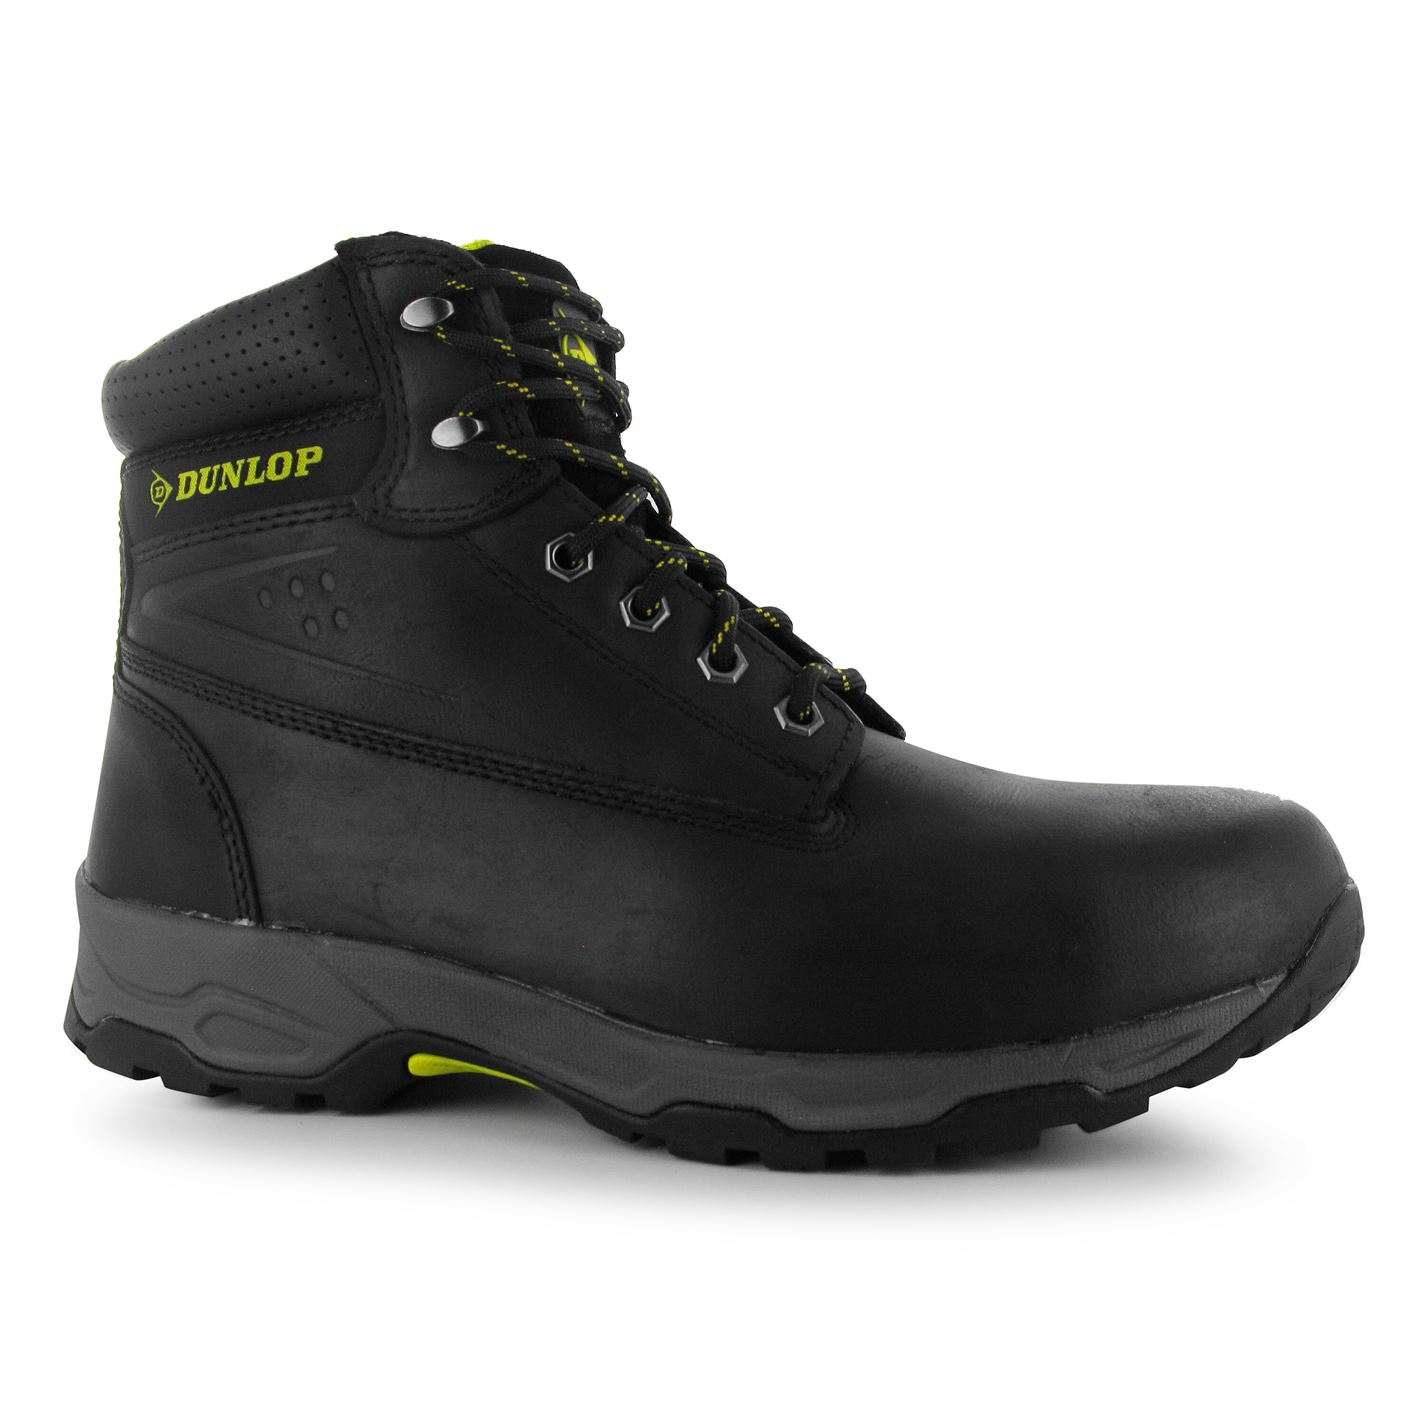 Dunlop Safety On Site Steel Toe Cap Safety Boots Black